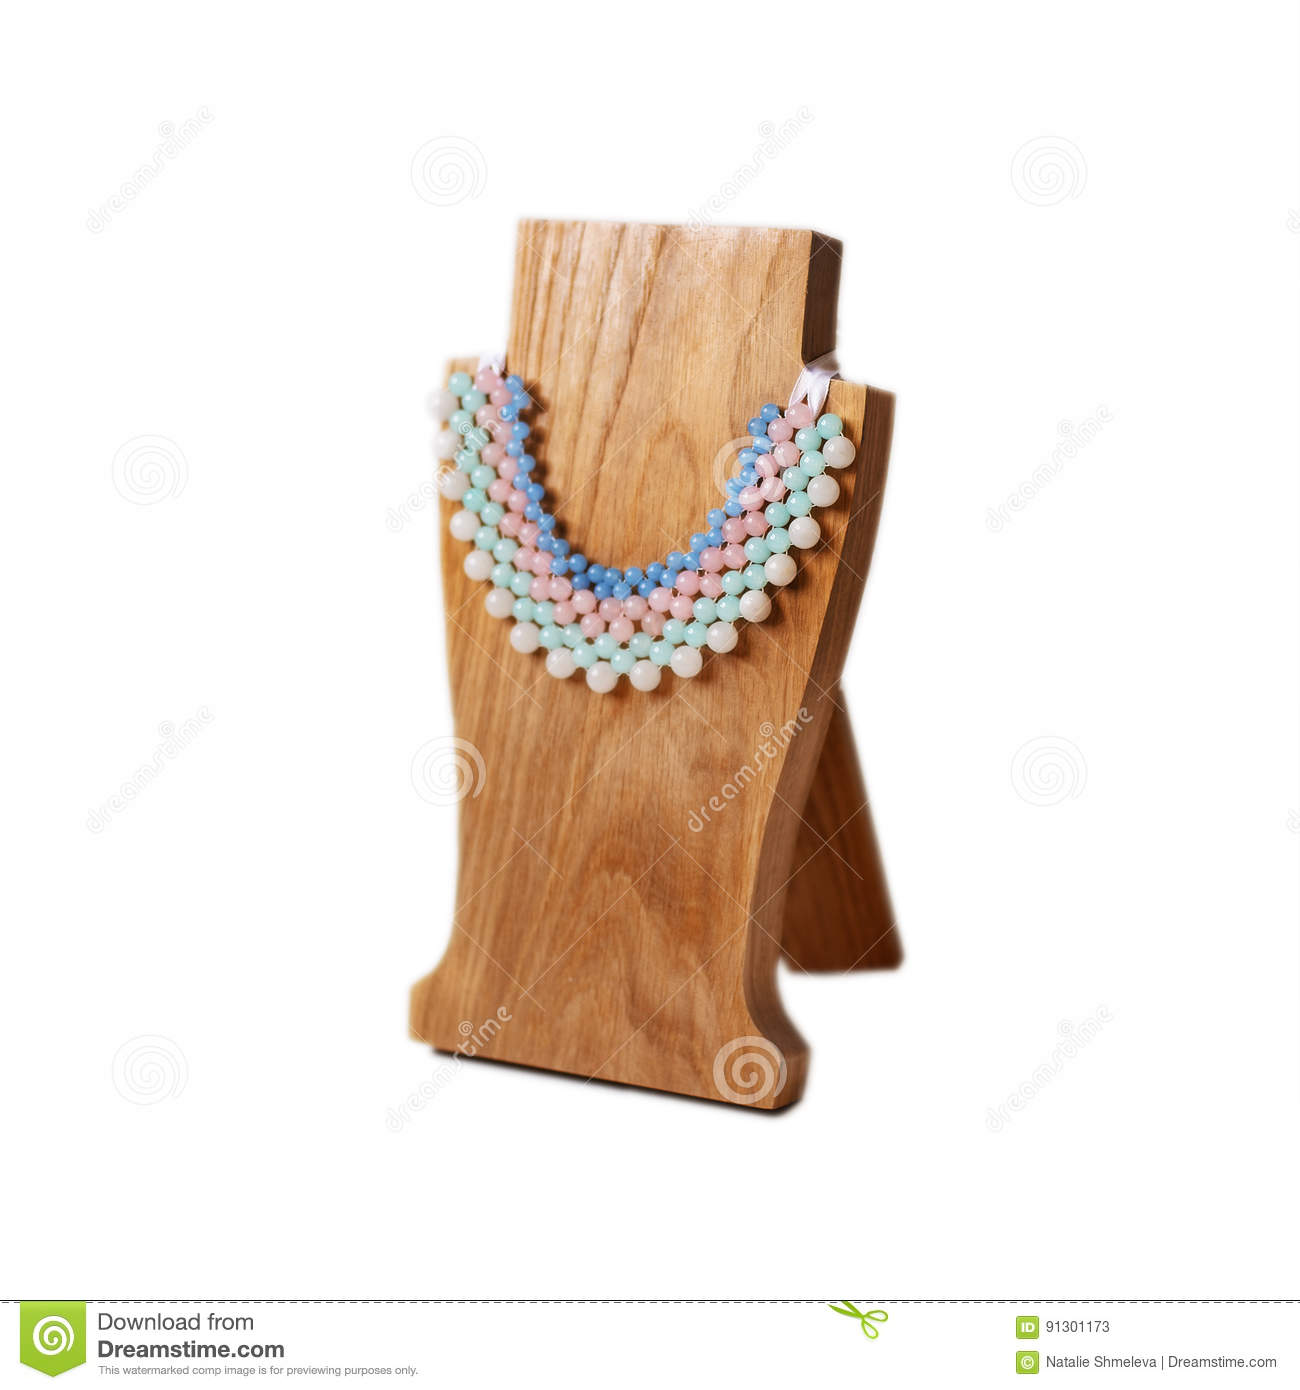 Wooden Jewelry Stand Stock Image Image Of Handmade Elegance 91301173